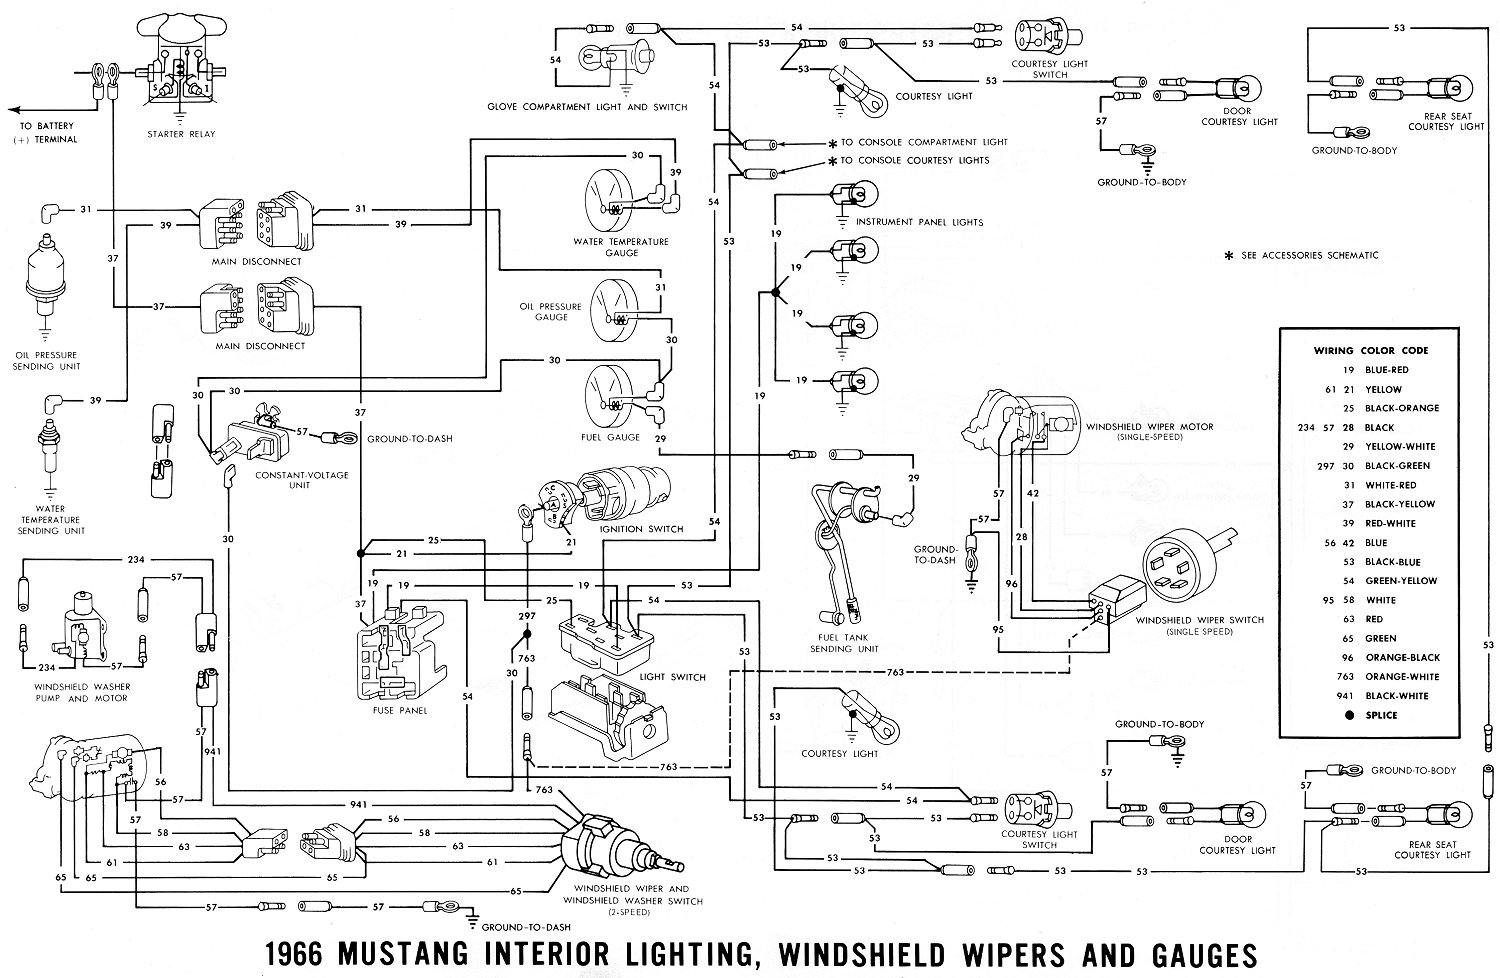 66inter1 1966 mustang wiring diagram 1966 mustang ignition wiring diagram 1965 ford mustang wiring diagrams at sewacar.co